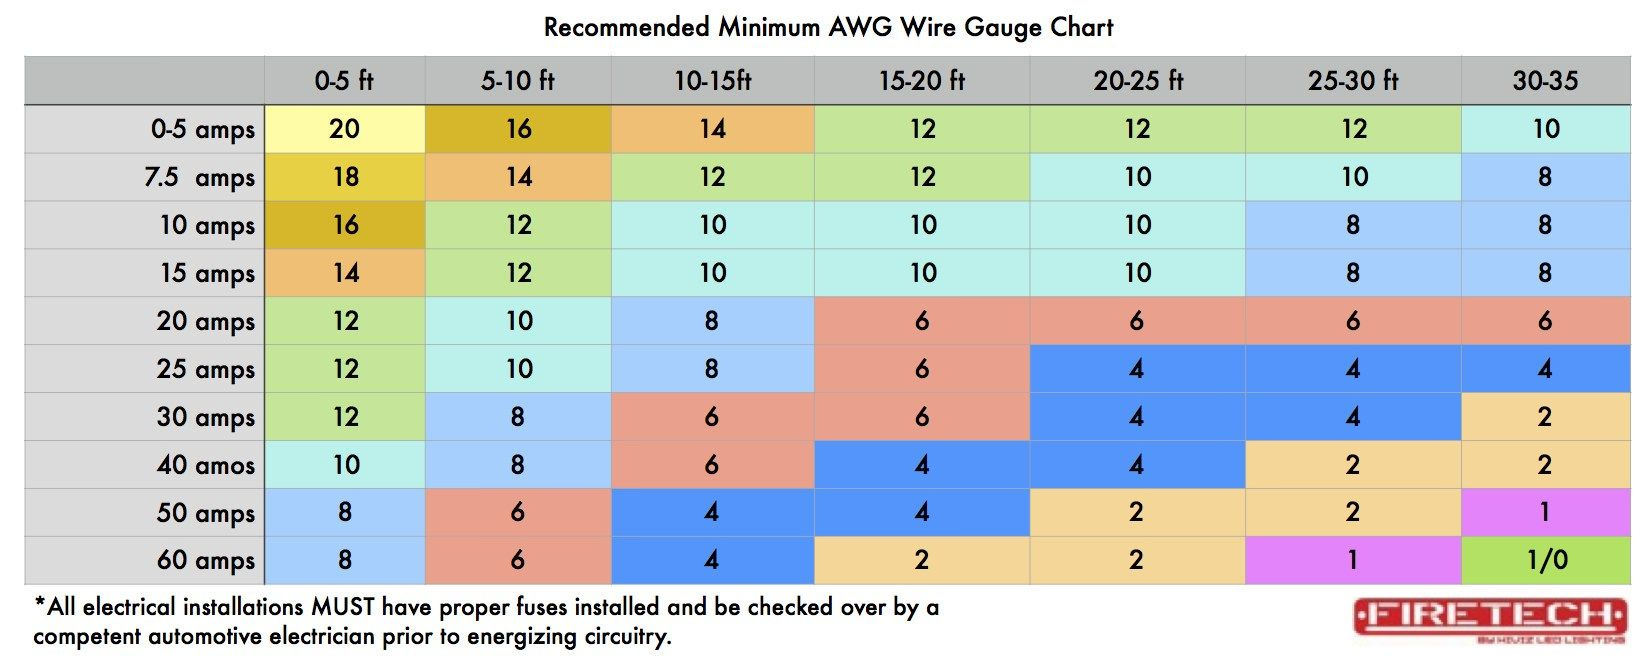 15 amp wire gauge chart wire center image result for wire size chart electrical pinterest chart rh pinterest com 8 gauge wire amp rating wire size amp rating keyboard keysfo Image collections